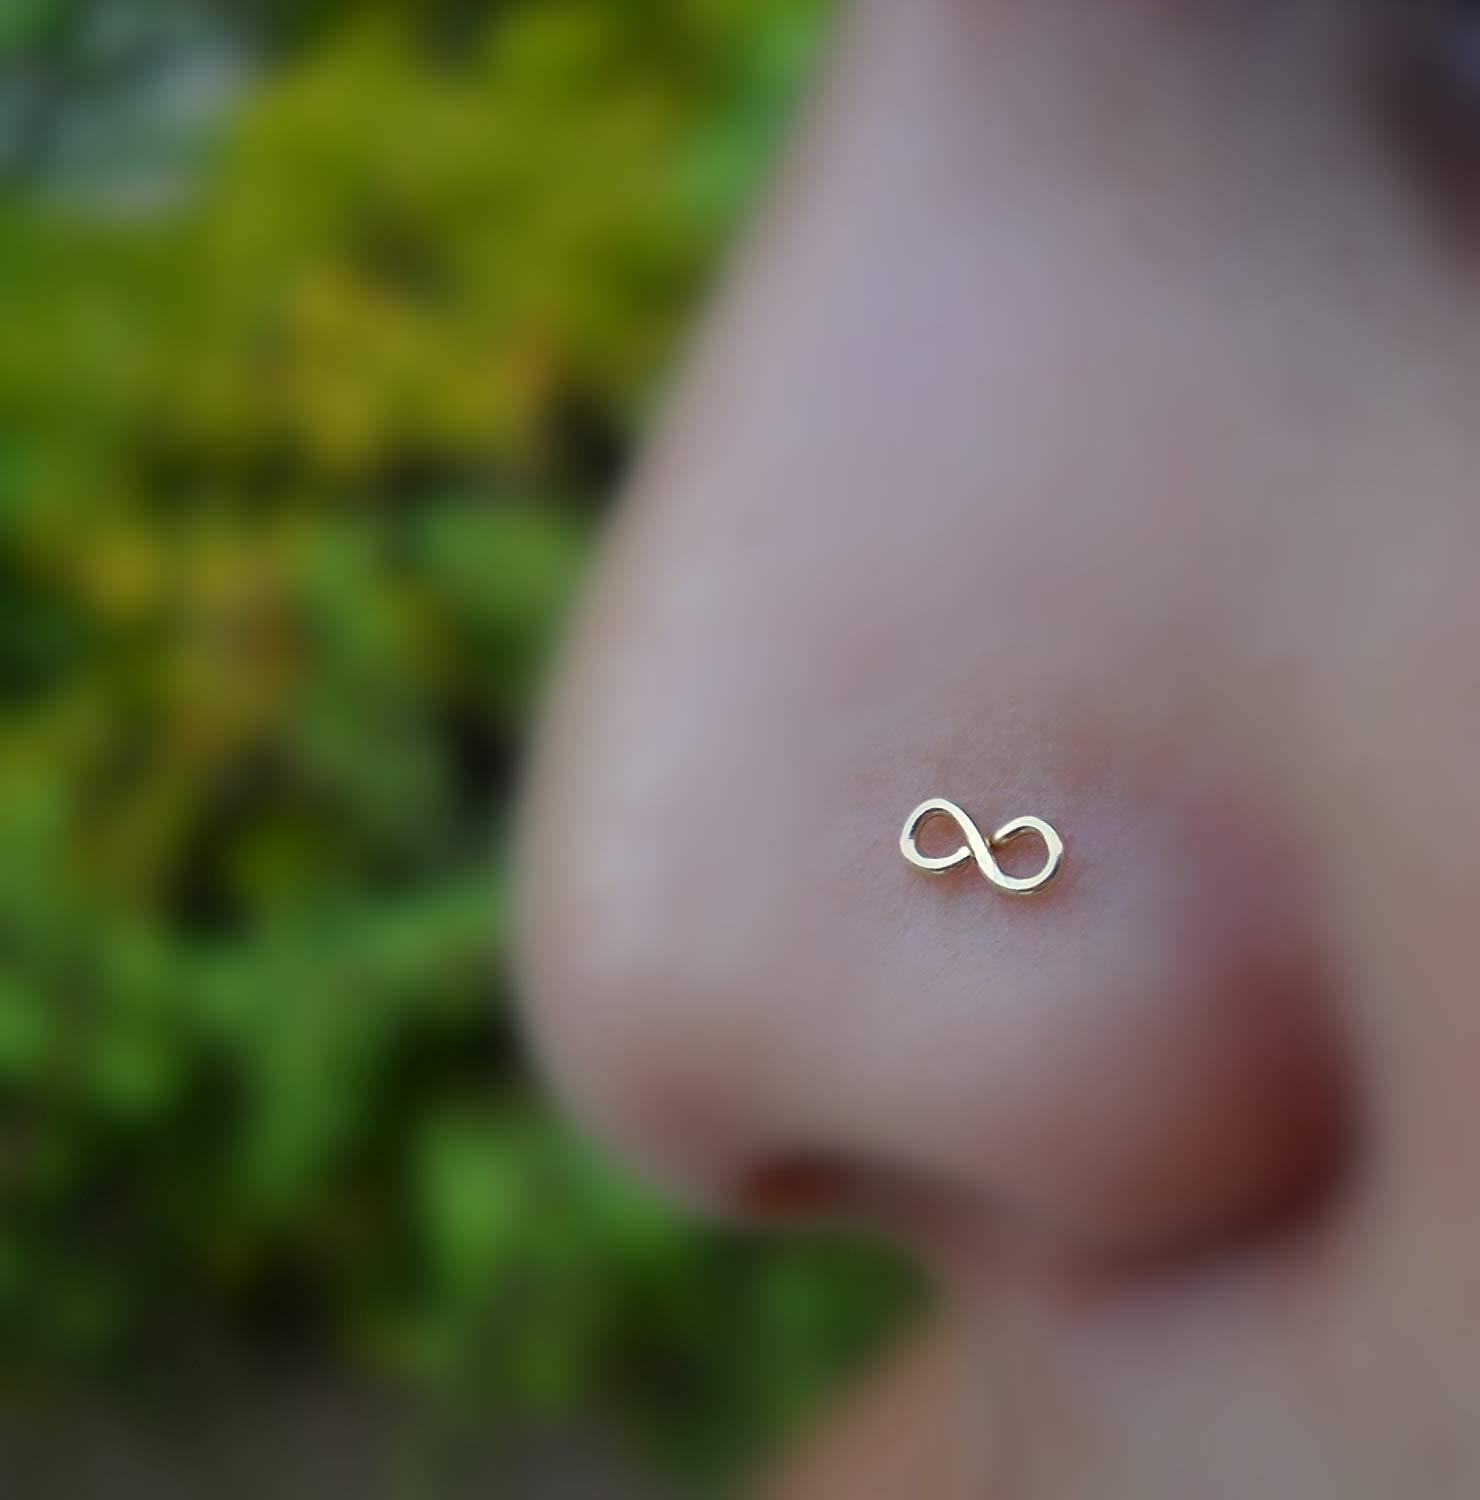 Nose Ring Stud - Cartilage Tragus Earring - 14K Yellow/Rose/White Gold - Infinity -22G to 16G Post